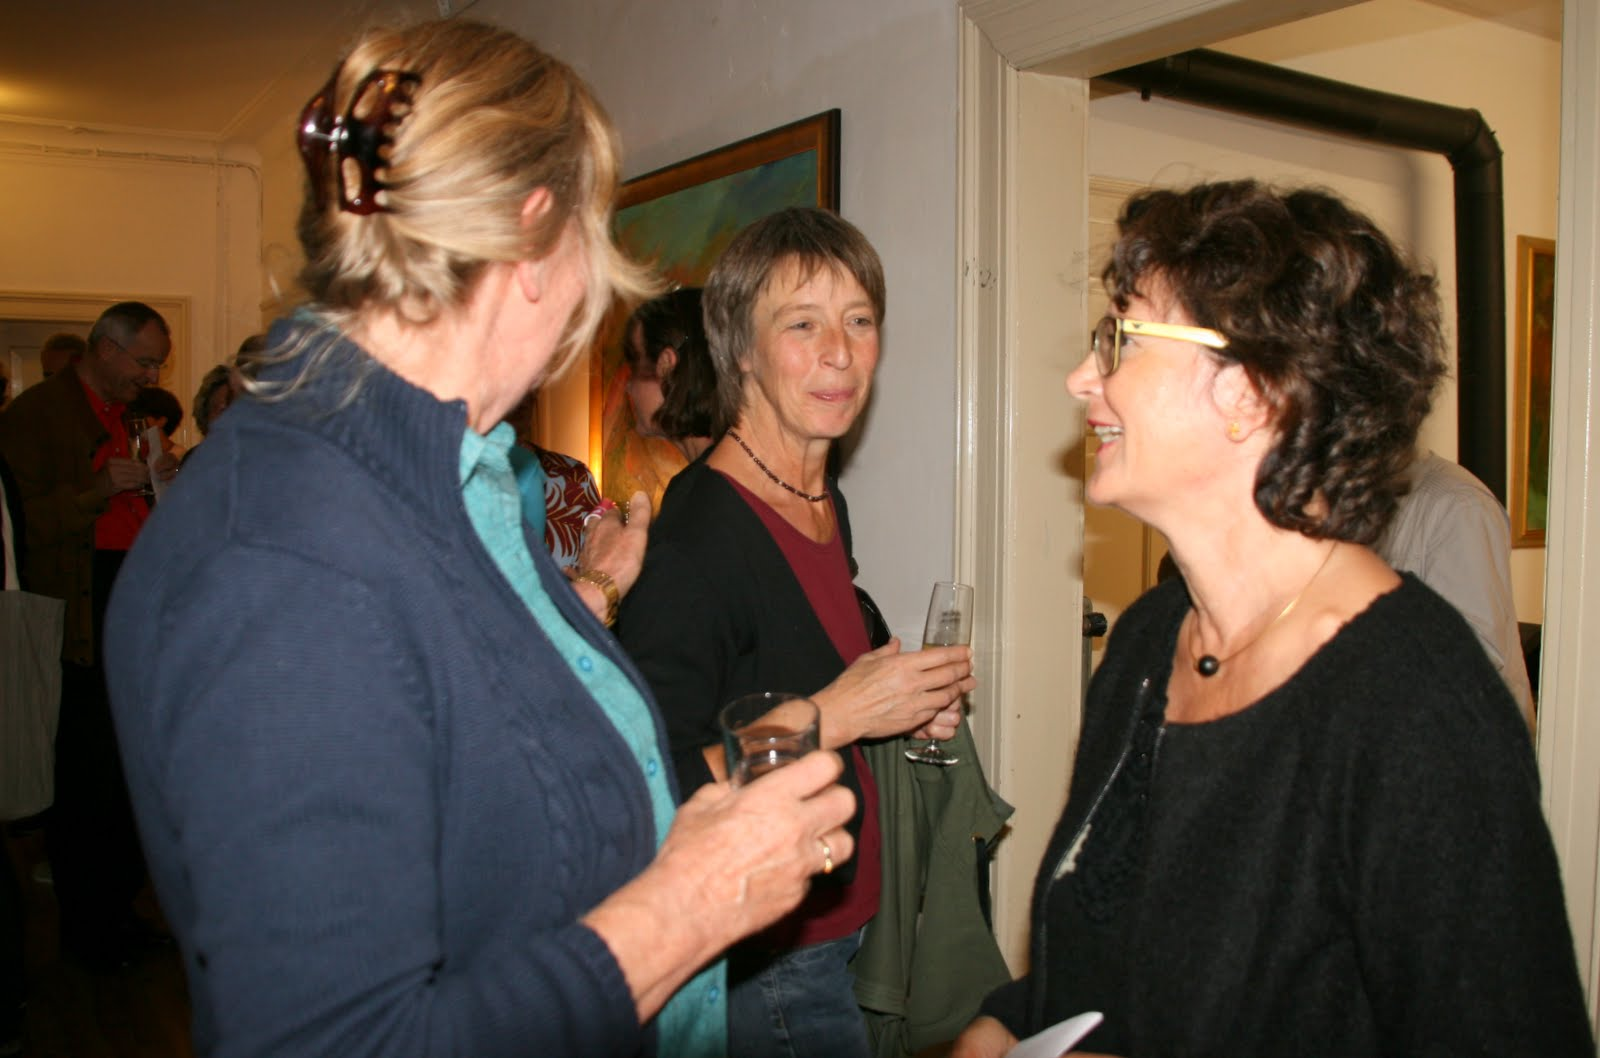 Draenert_Jubiläum__Christas_Vernissage_060